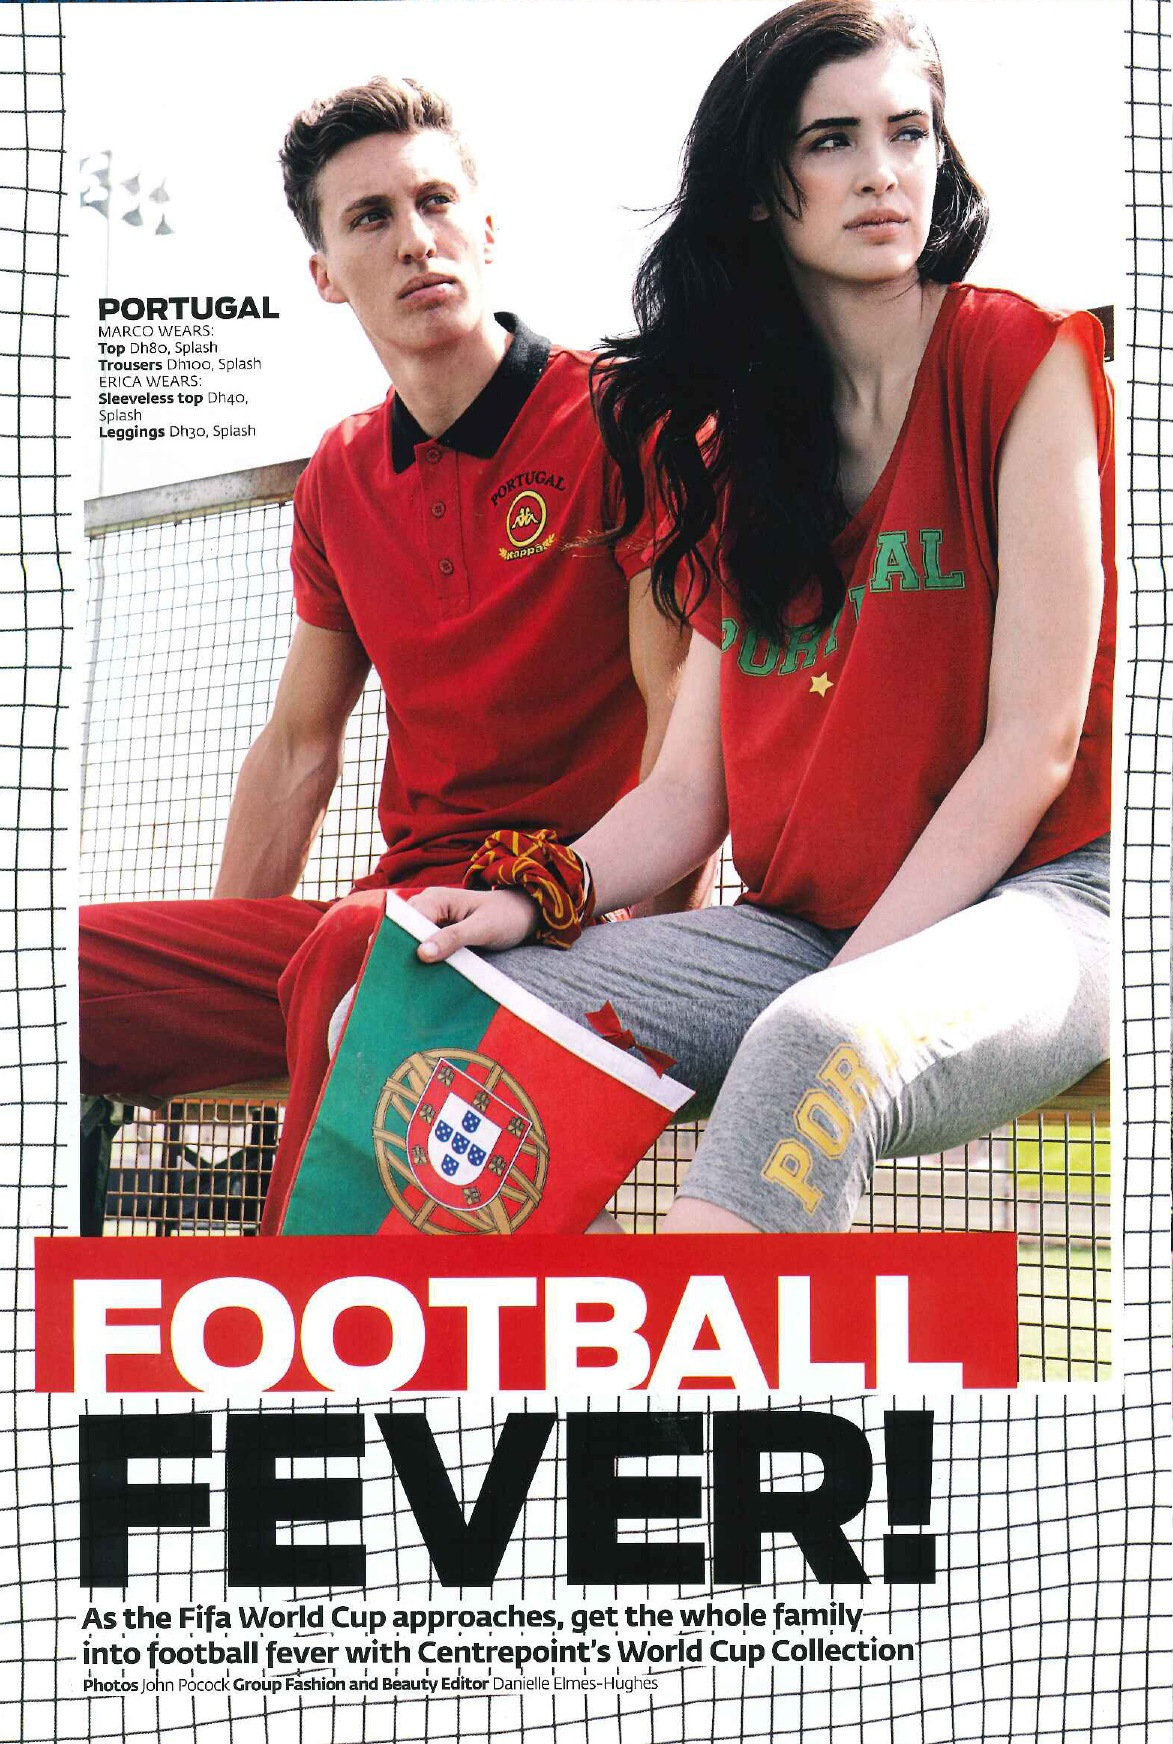 FLC Models & Talents - Catalogue Shoots - Football Fifa Feva Photoshoot Friday Magazine